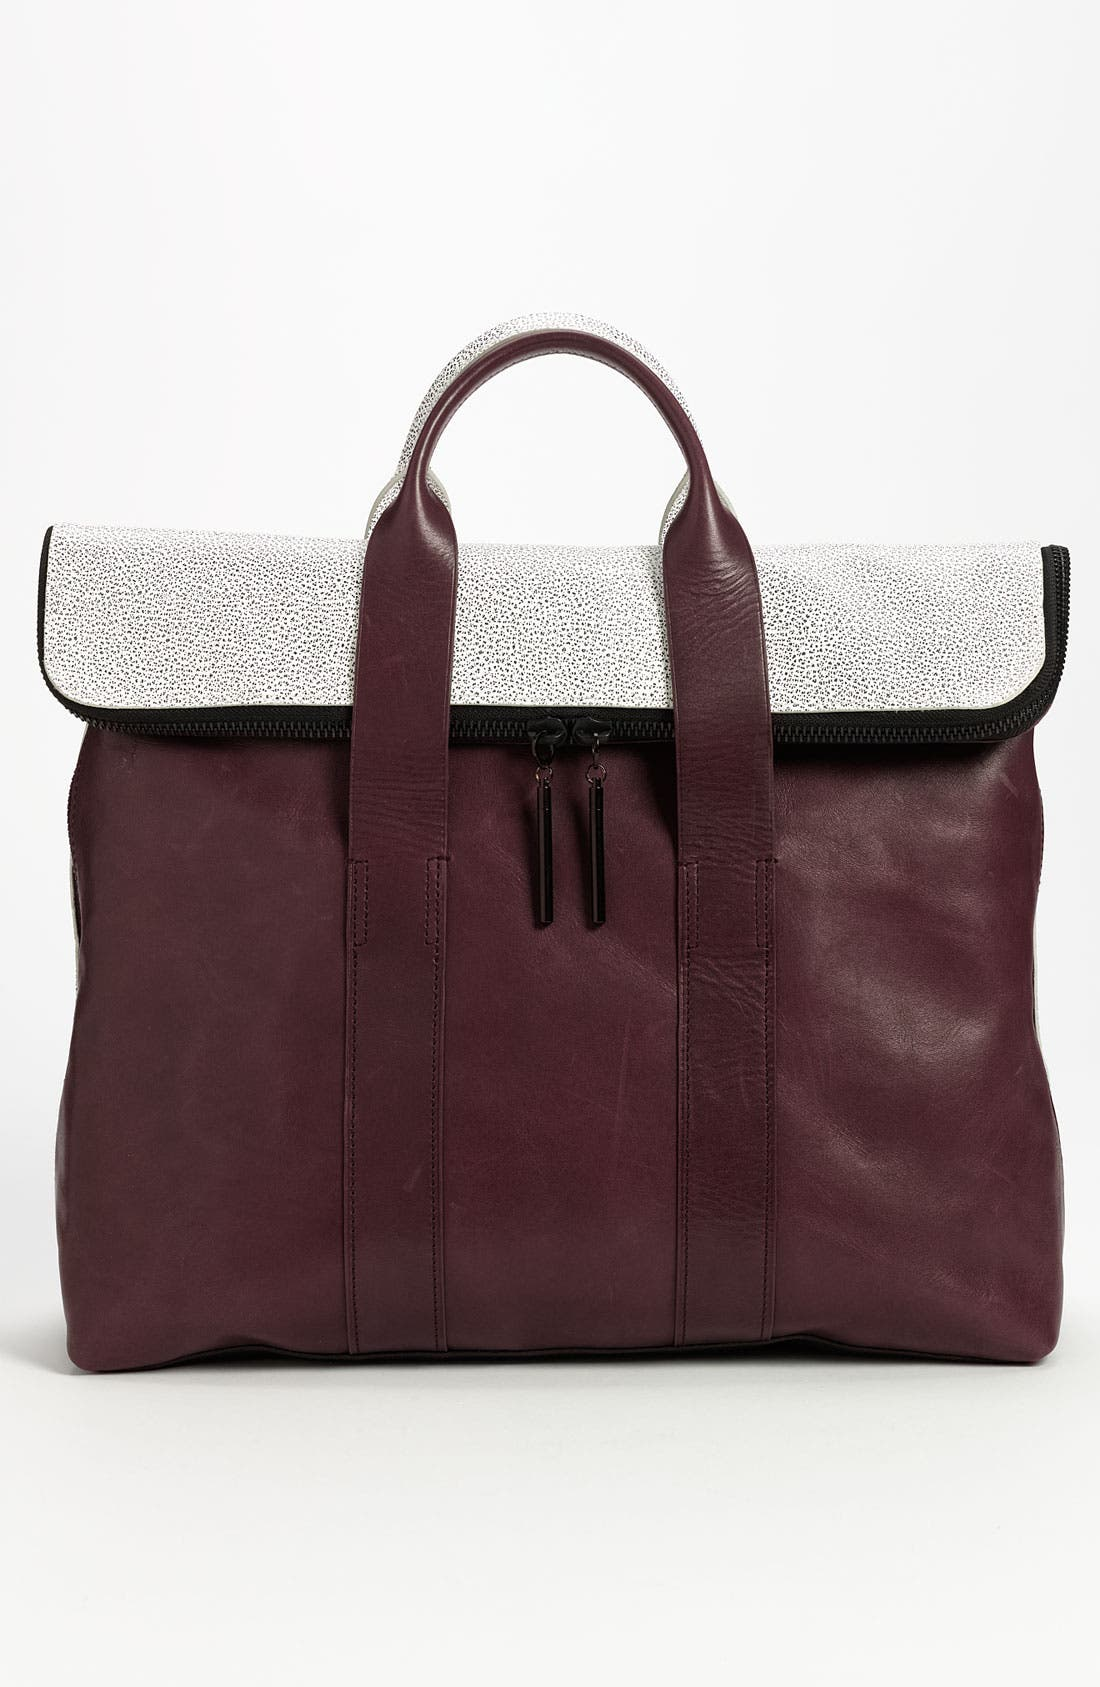 Main Image - 3.1 Phillip Lim '31 Hour' Leather Bag